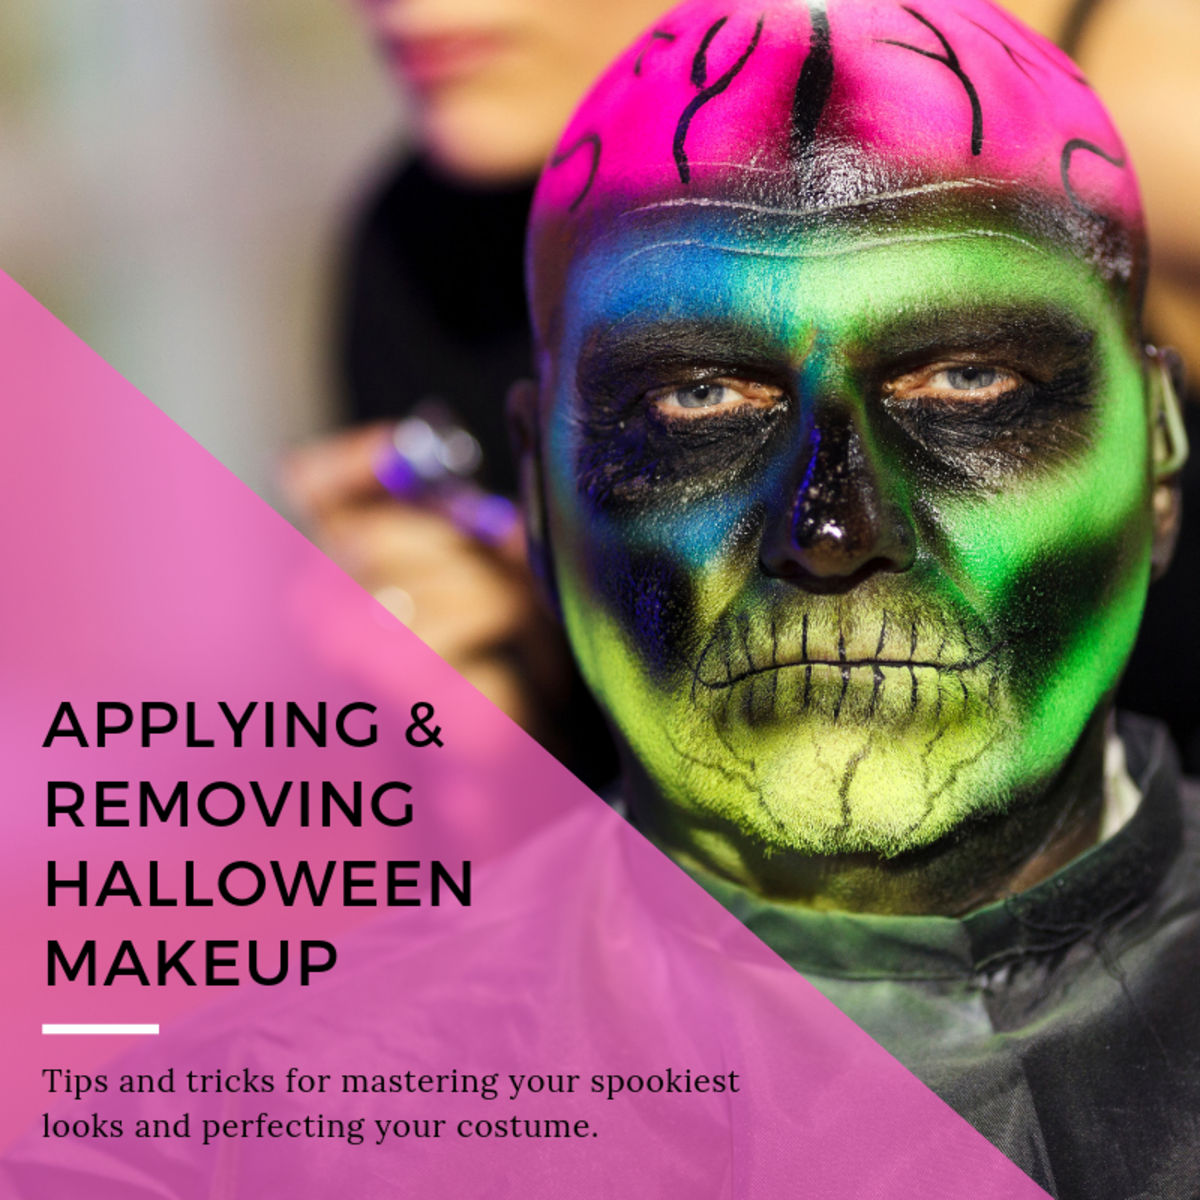 Tips for Applying and Removing Halloween Makeup